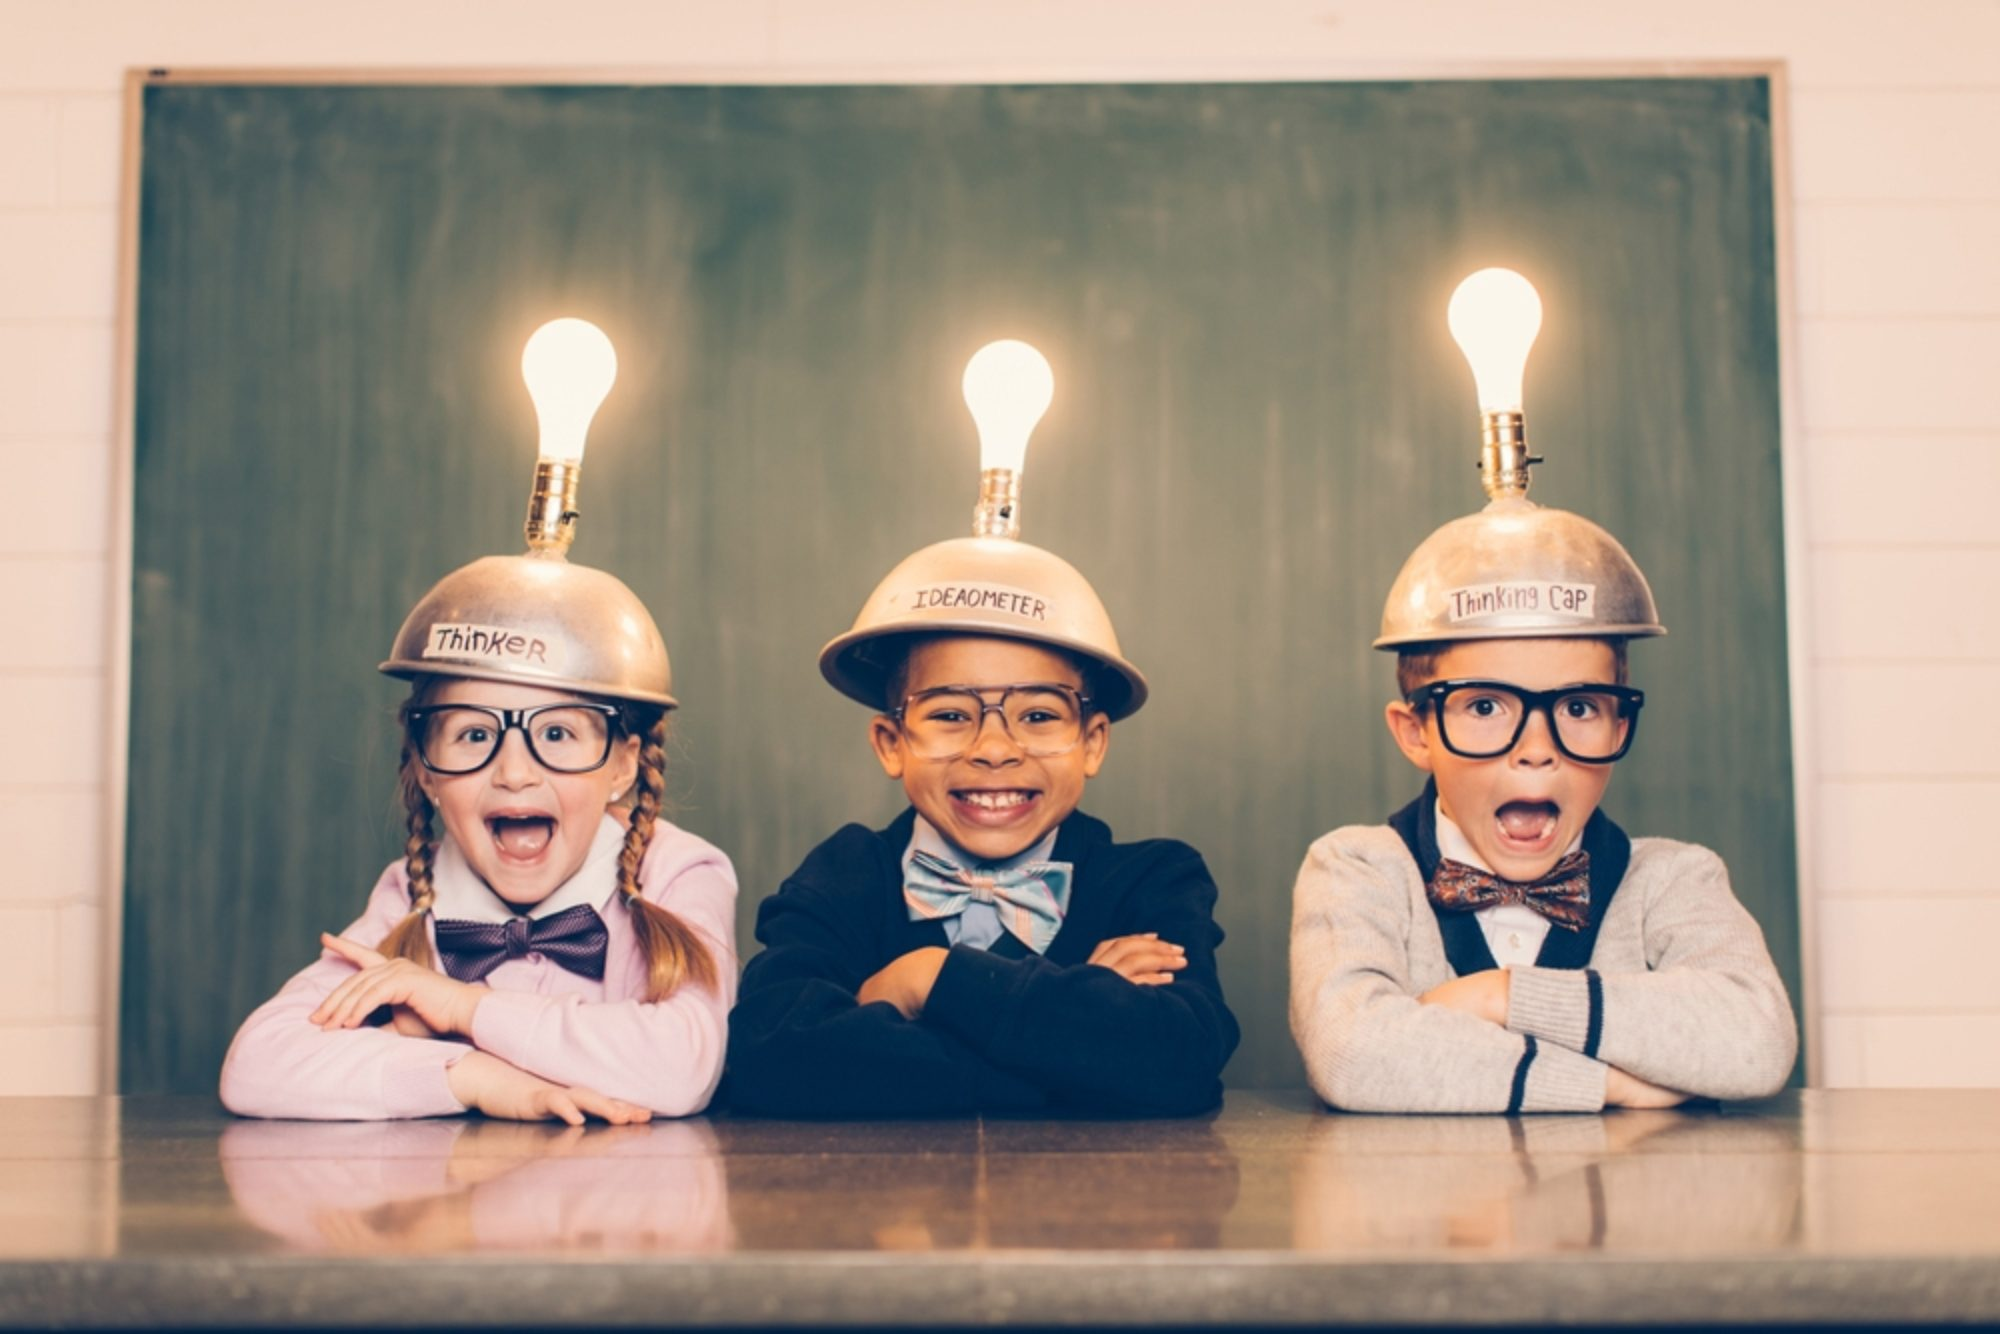 Three smiling young kids wearing lightbulb helmets